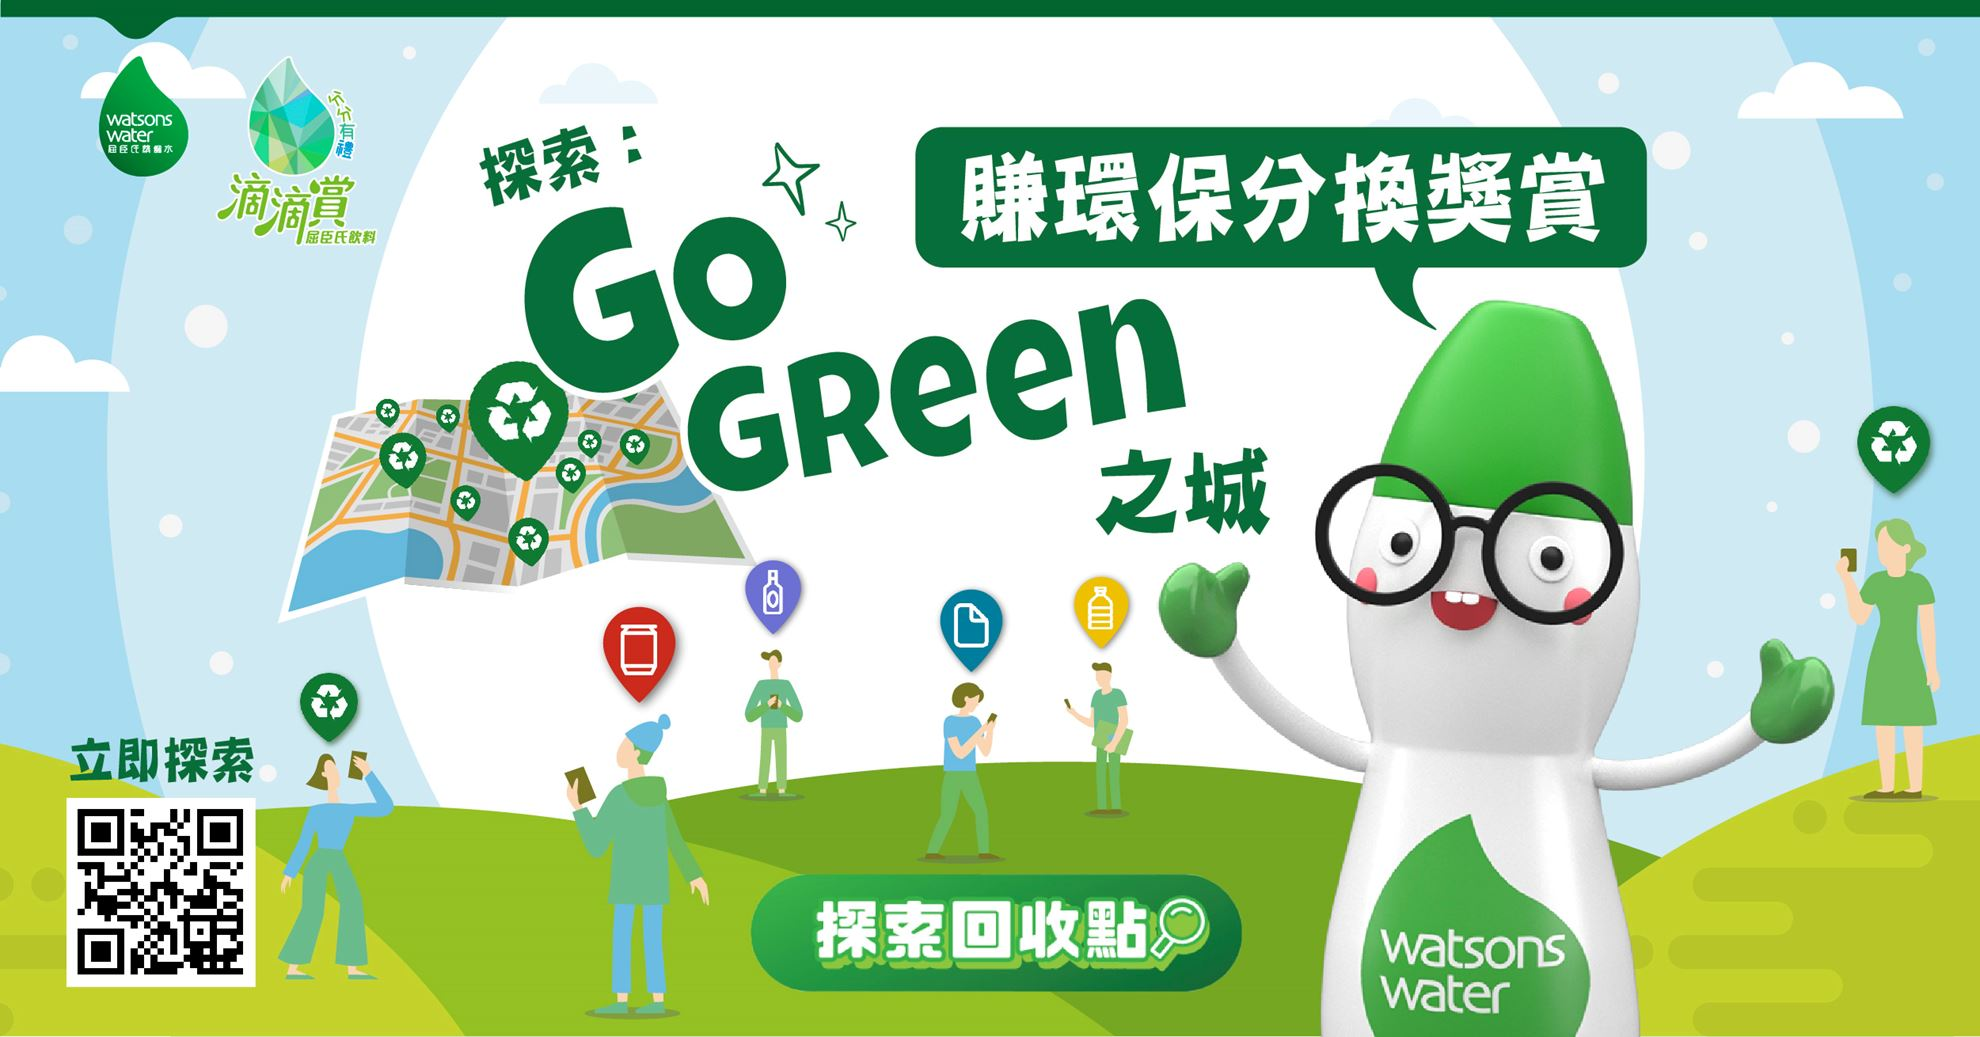 Discover: Go Green City